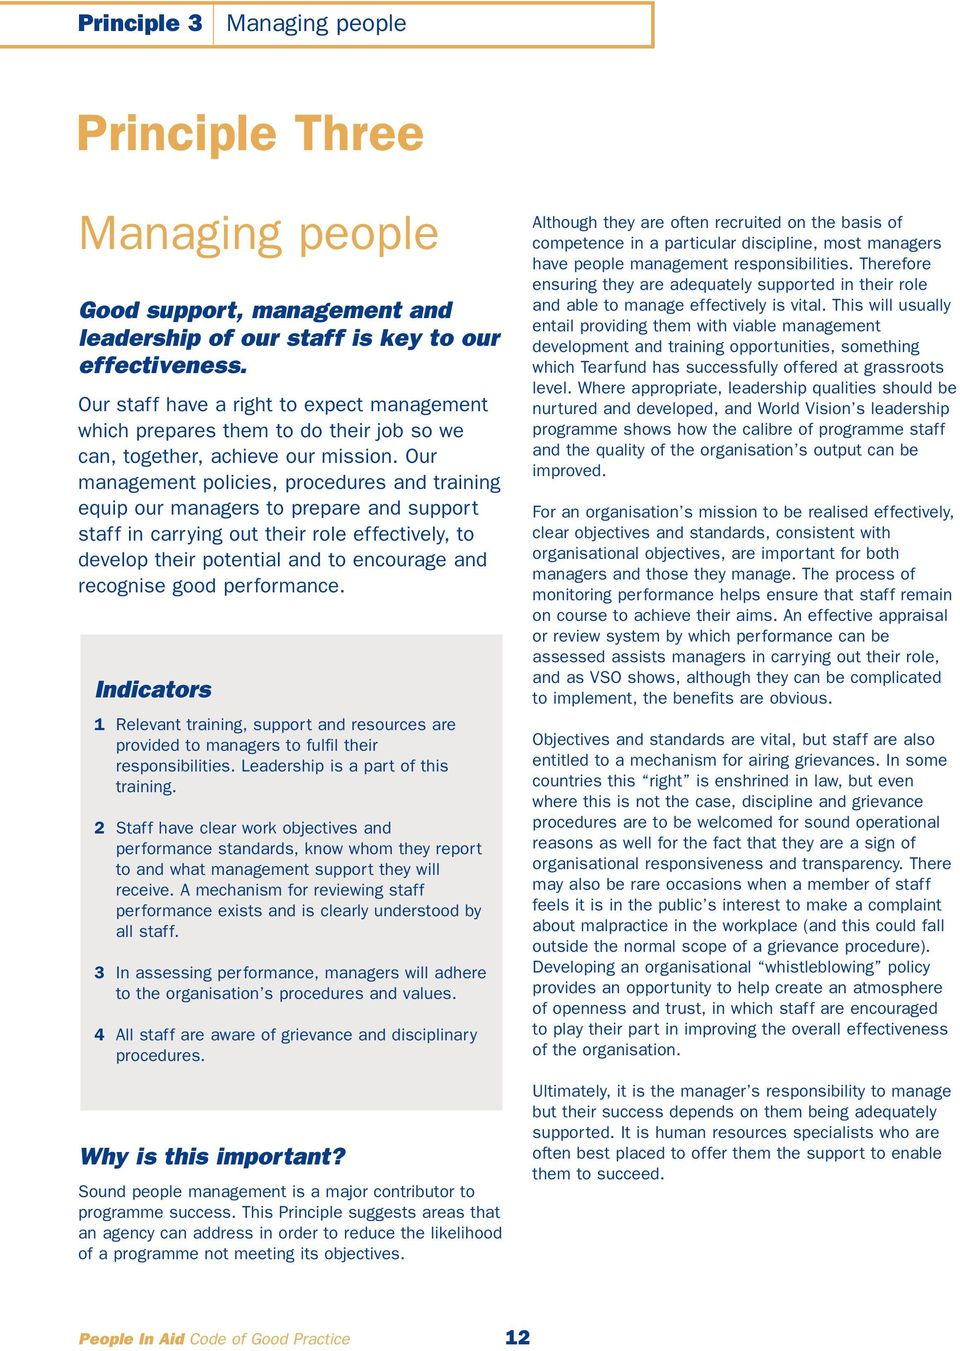 Our management policies, procedures and training equip our managers to prepare and support staff in carrying out their role effectively, to develop their potential and to encourage and recognise good